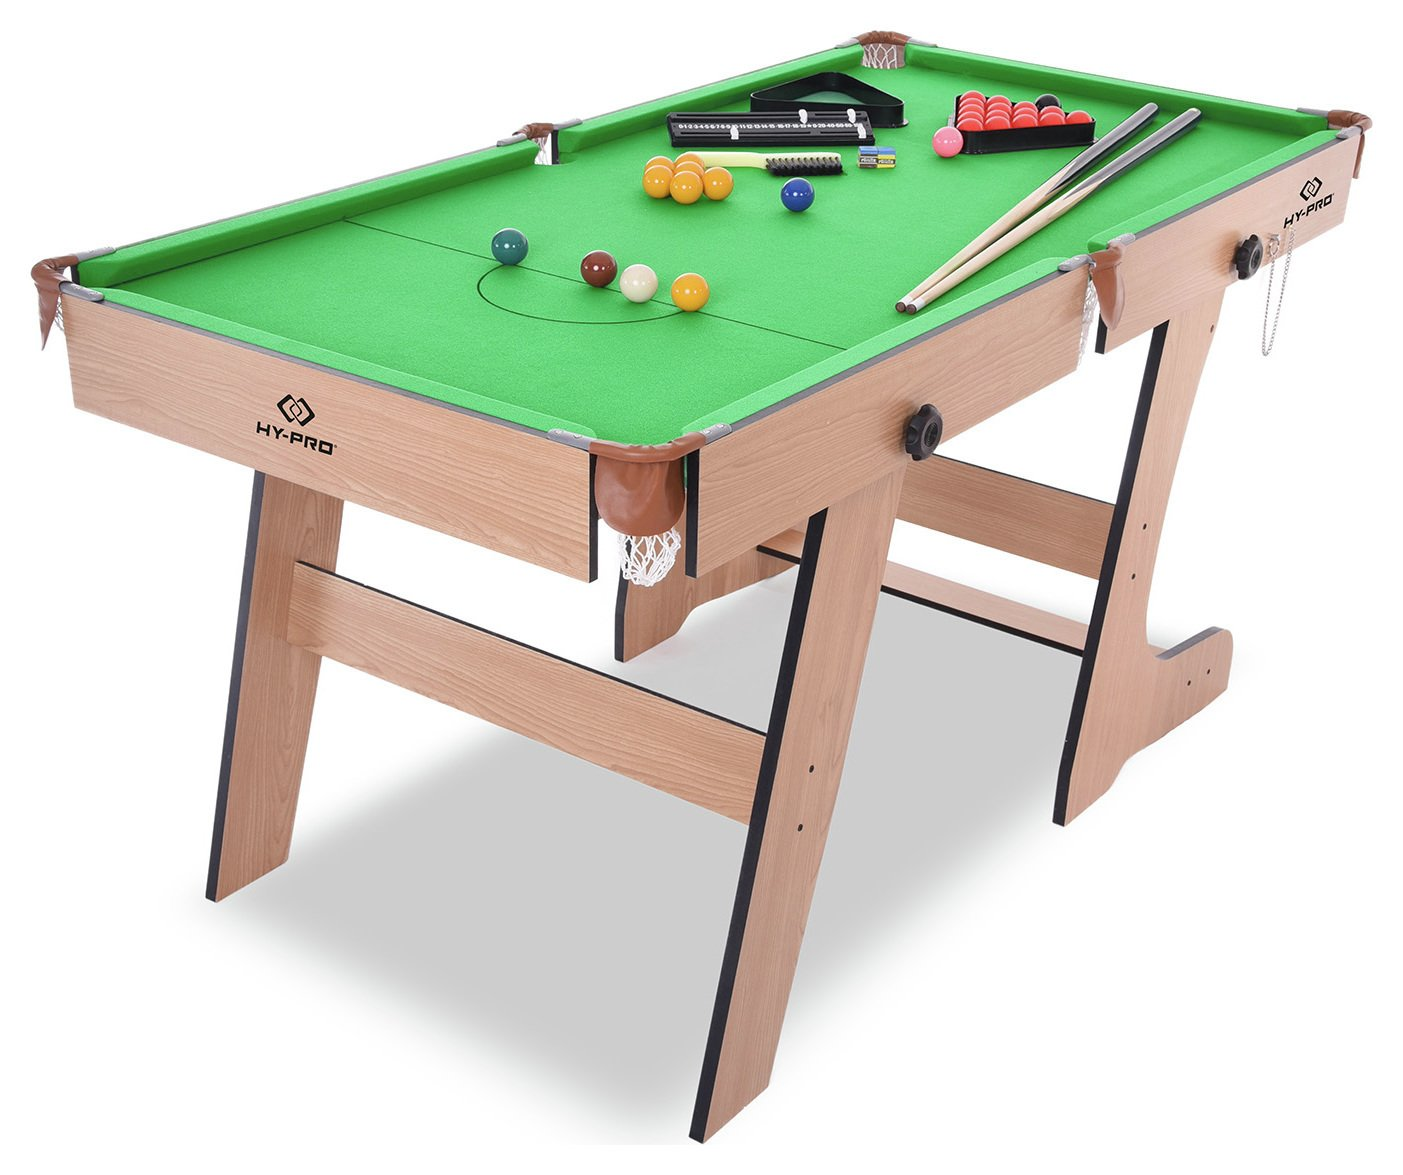 'Hypro - 6ft Folding Snooker And Pool Table